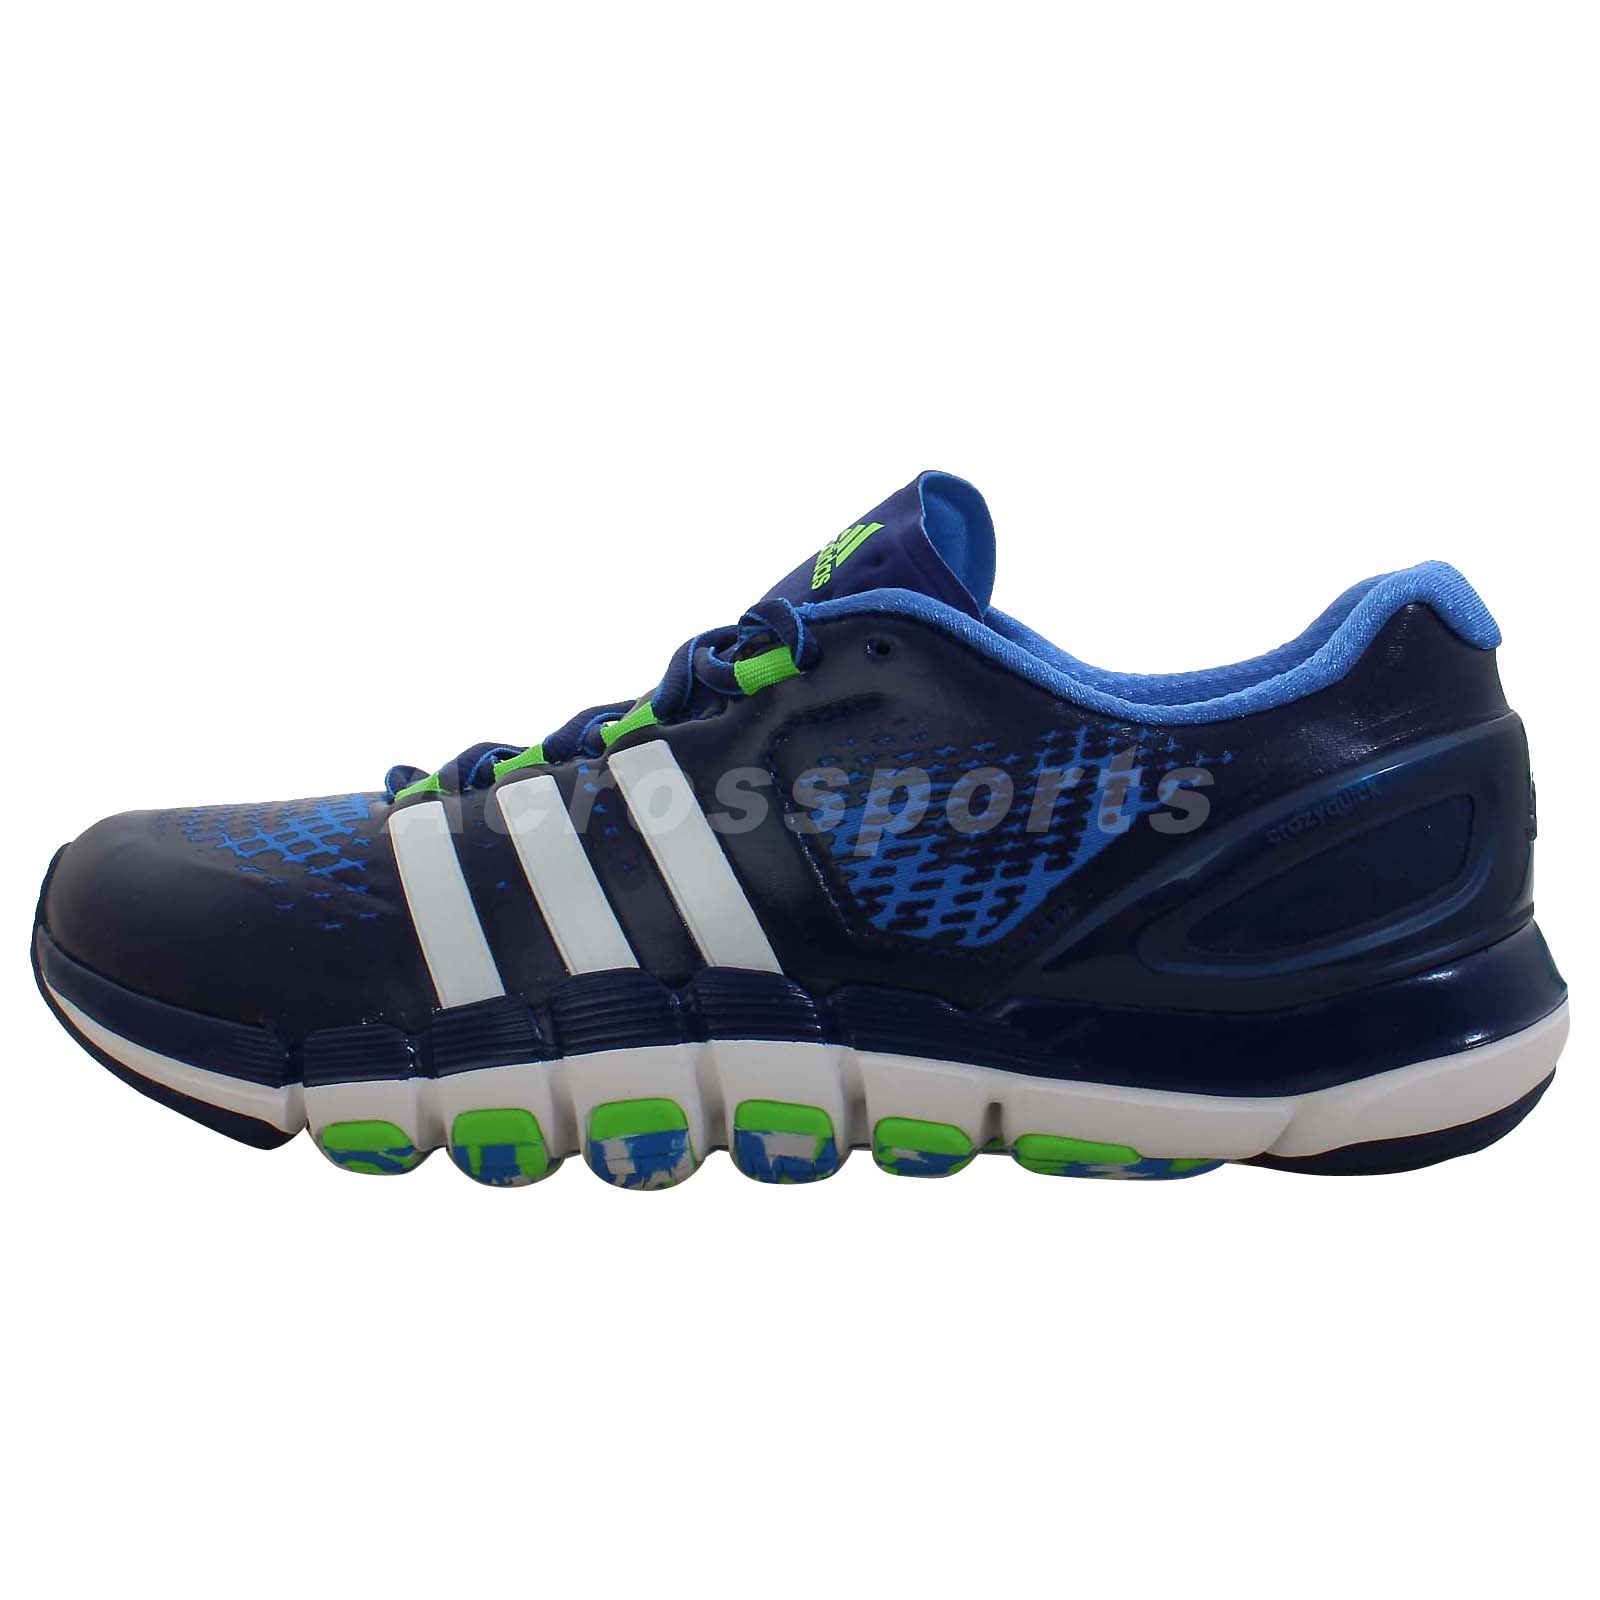 adidas adipure crazyquick tr mens cross running